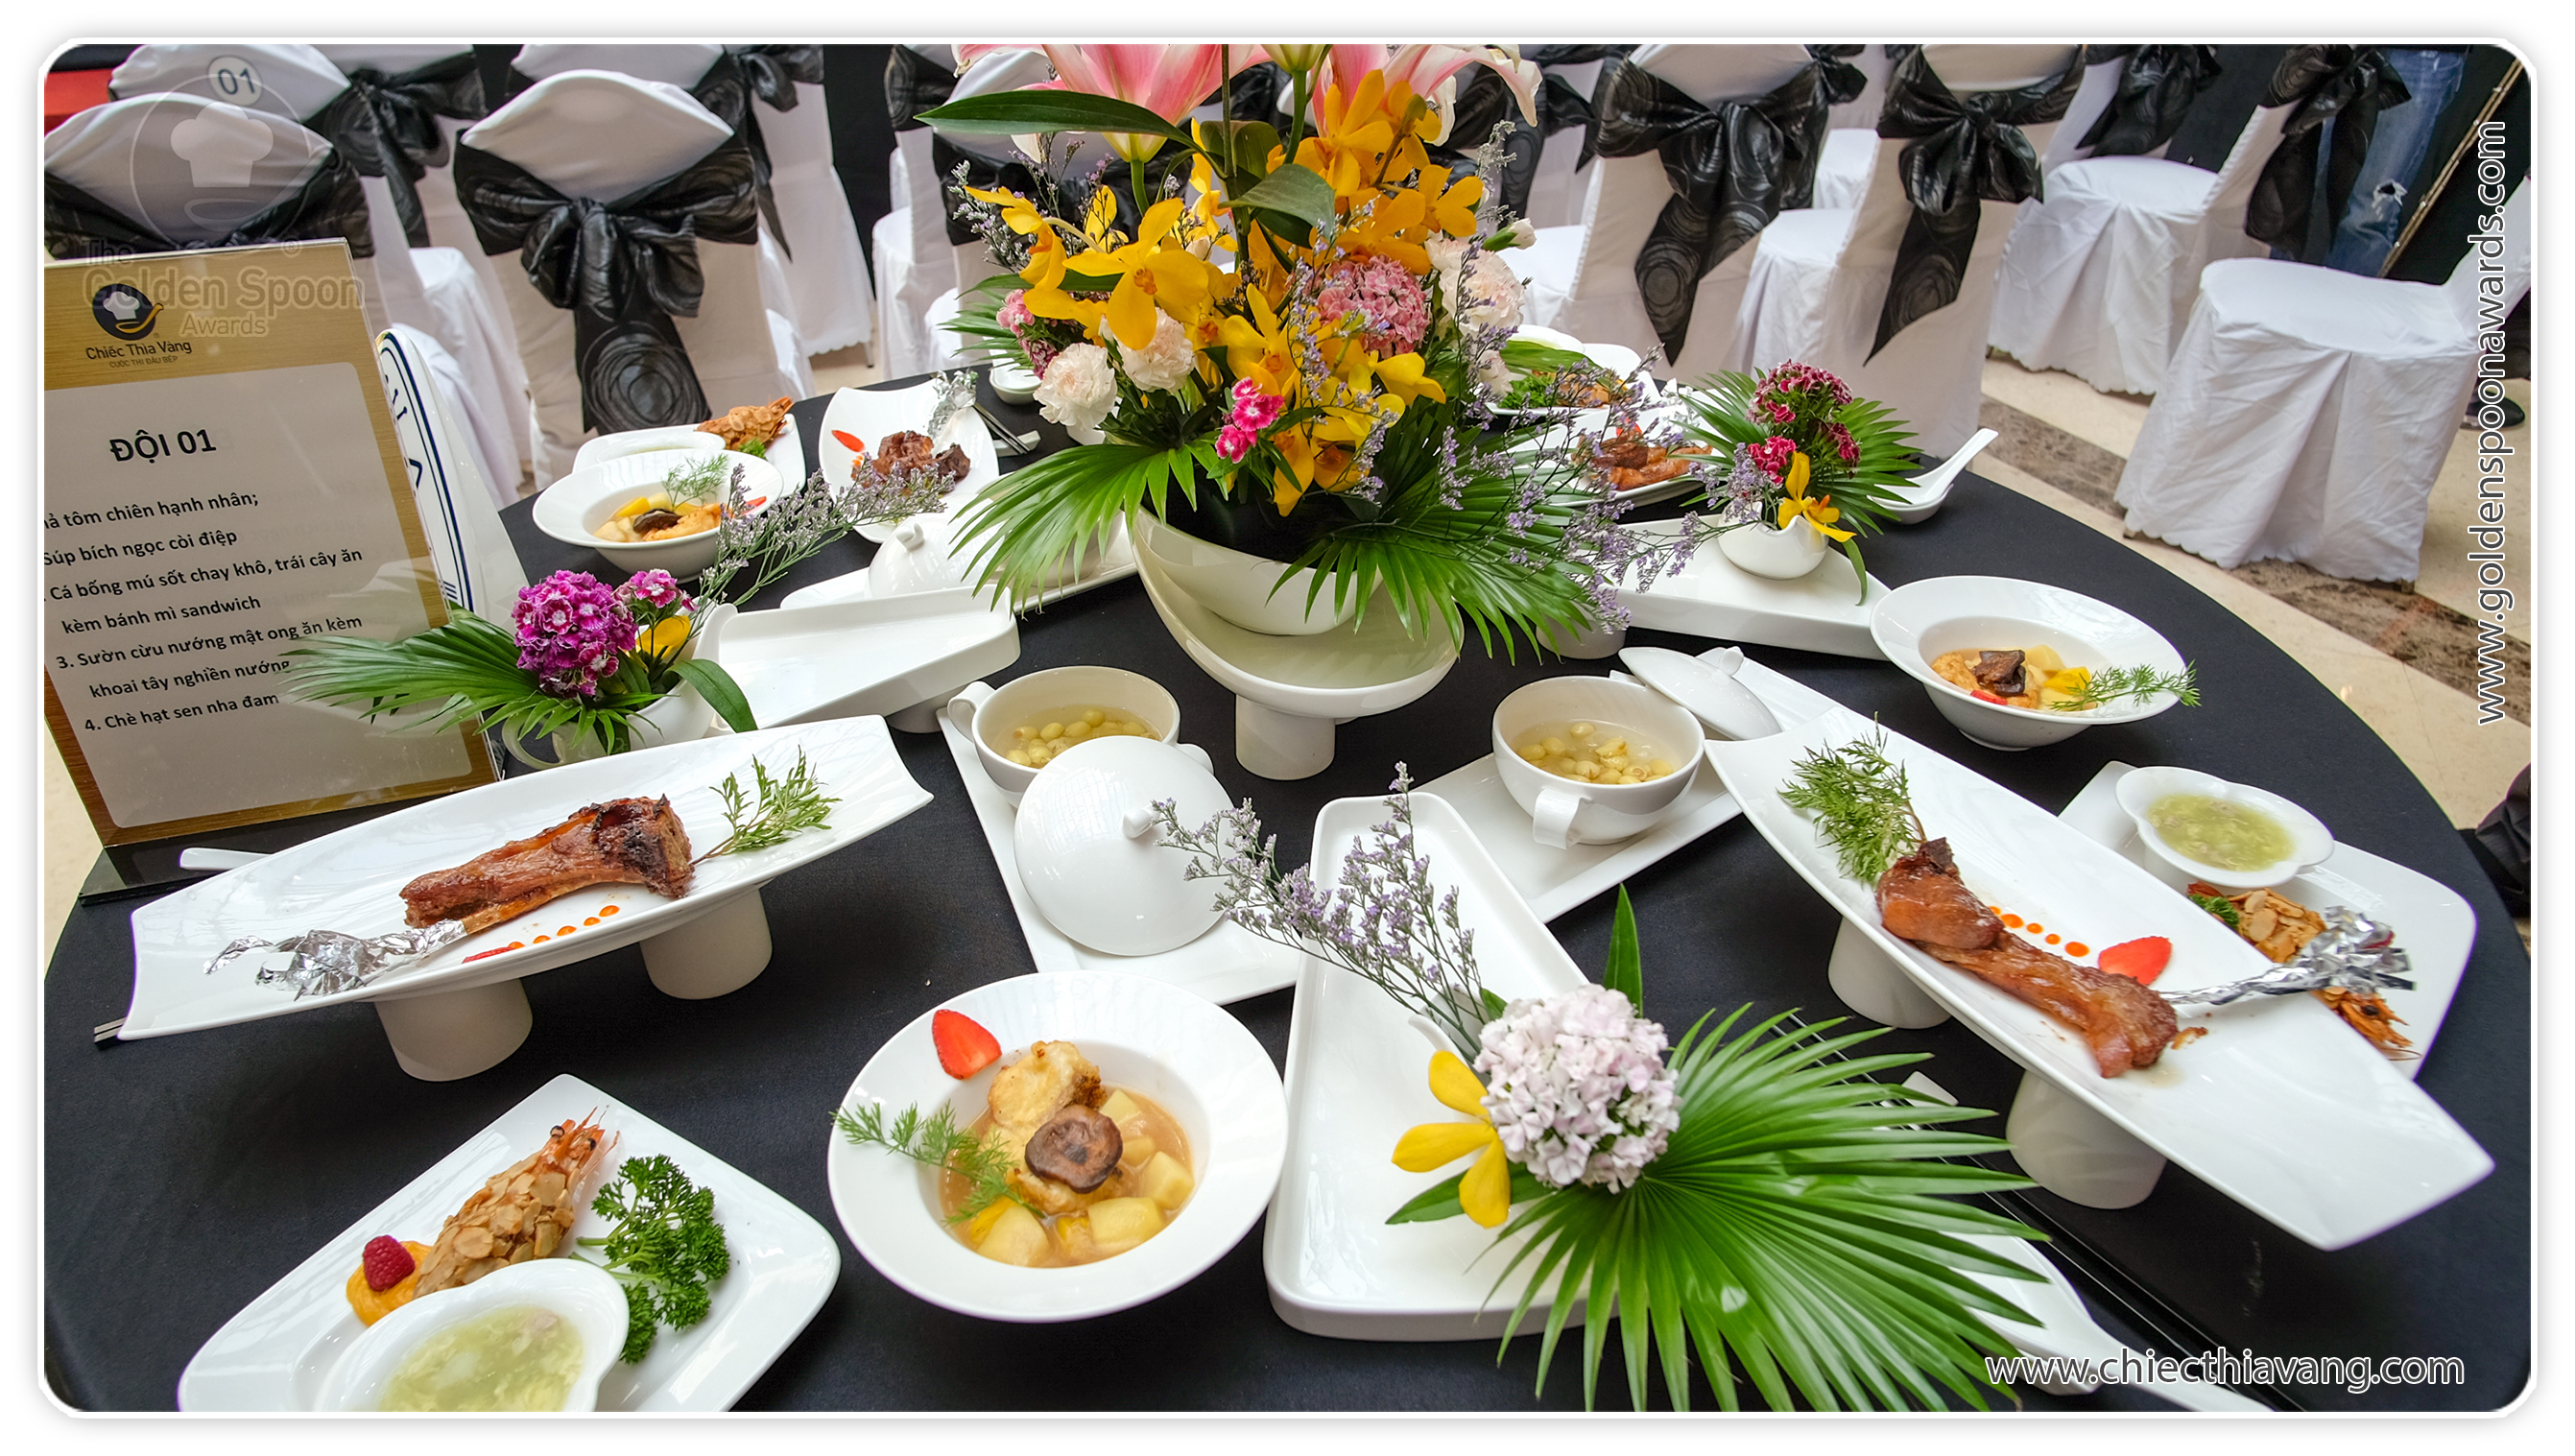 One of tables entered at the 2015 Golden Spoon Contest was inspired by the countryside of the Southwest region